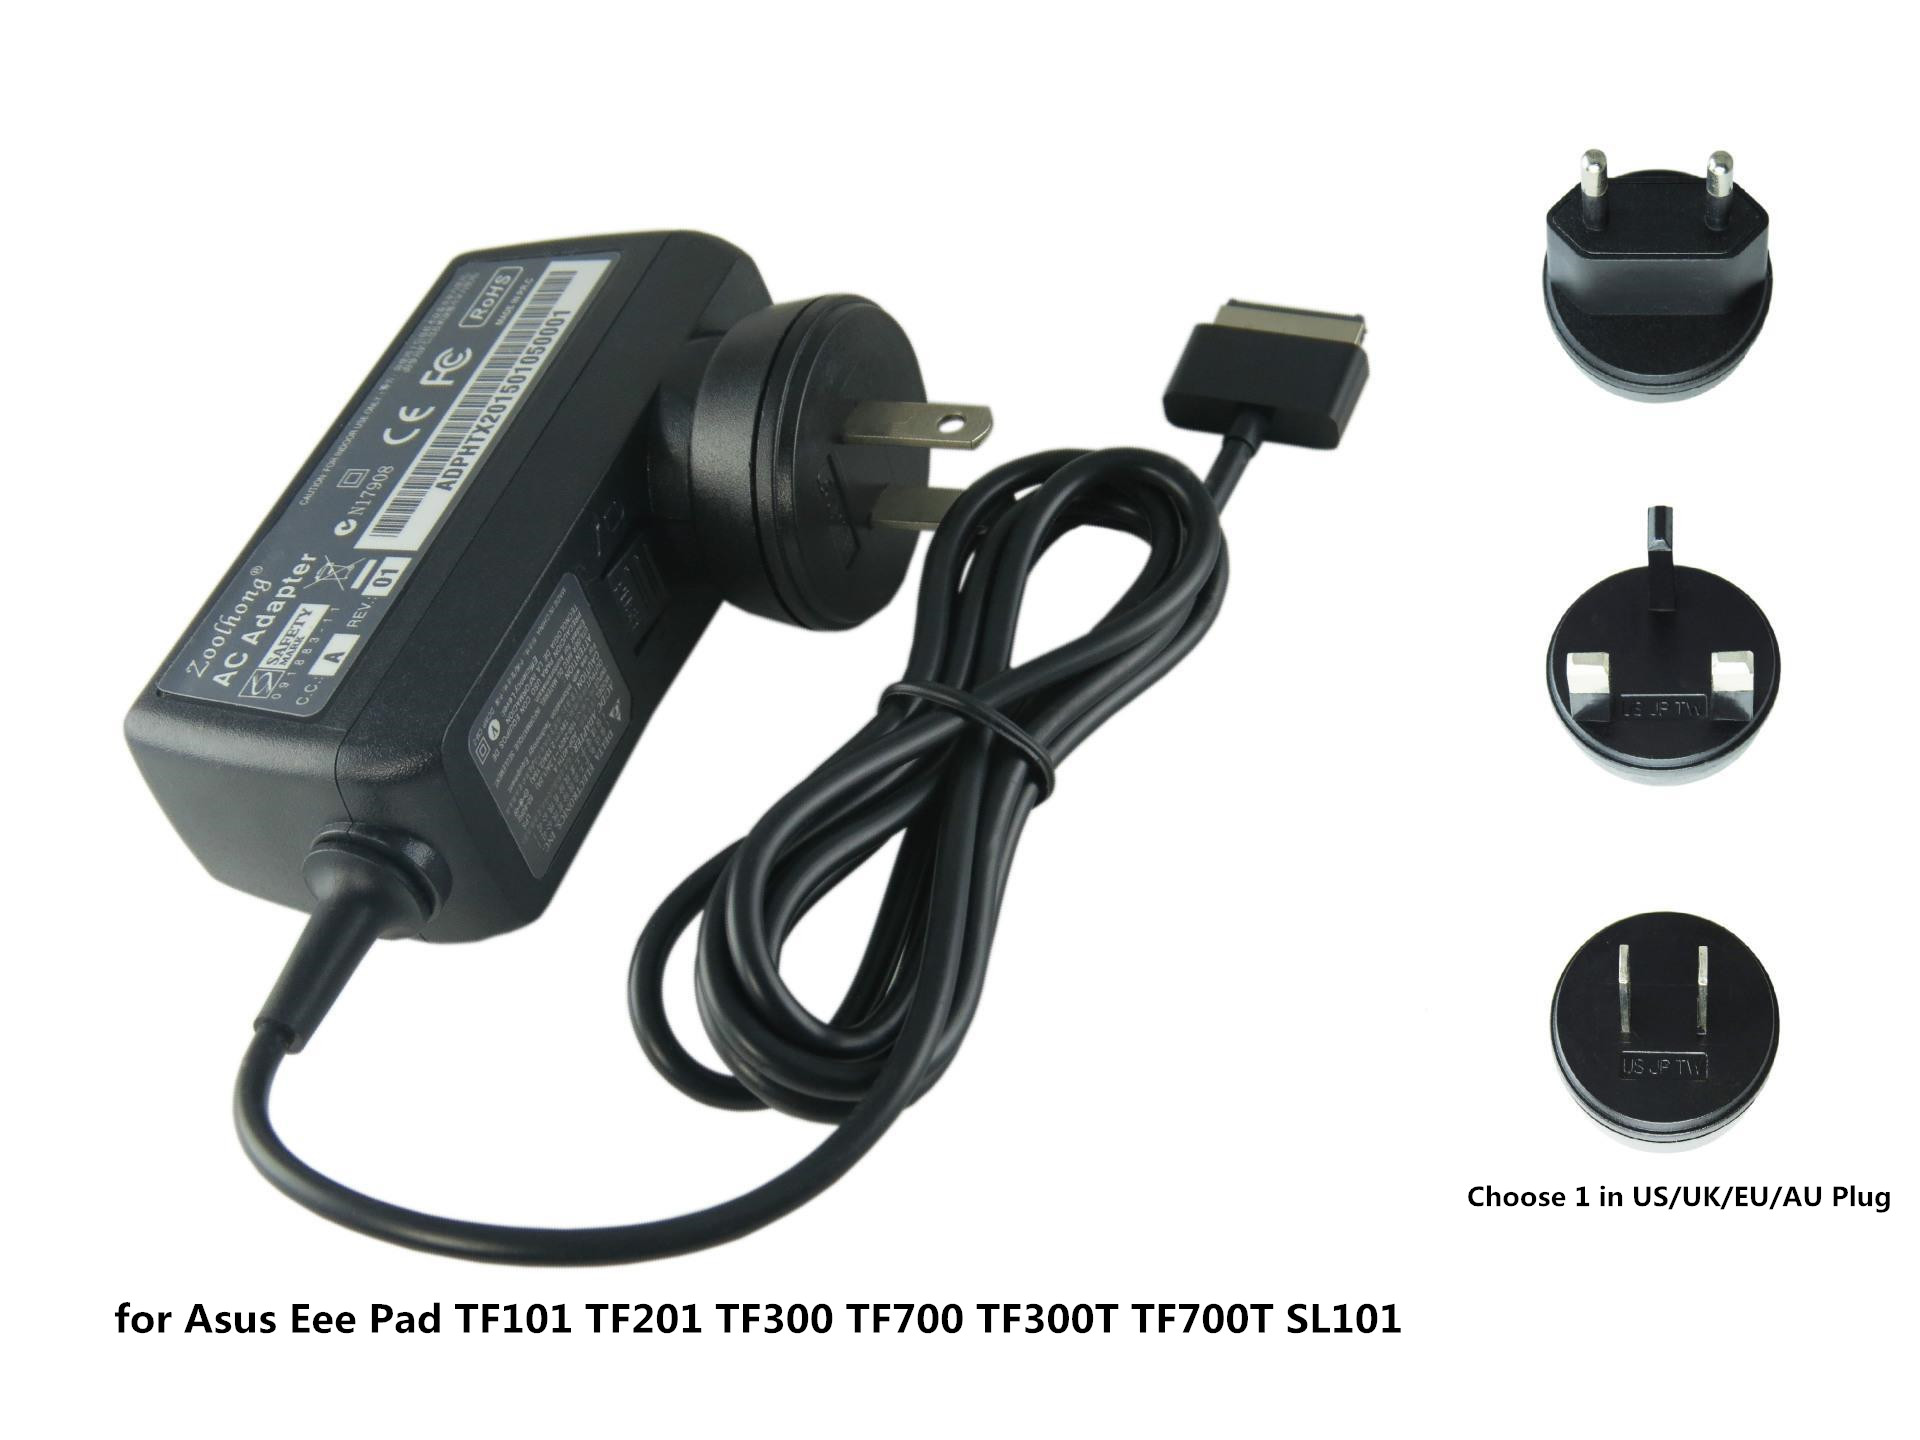 18 W Laptop AC Power Adapter Charger Untuk Asus Eee Pad TF101 TF201 TF300 TF300T TF700 TF700T SL101 Tablet US EU UK Plug 15 V 1 2A